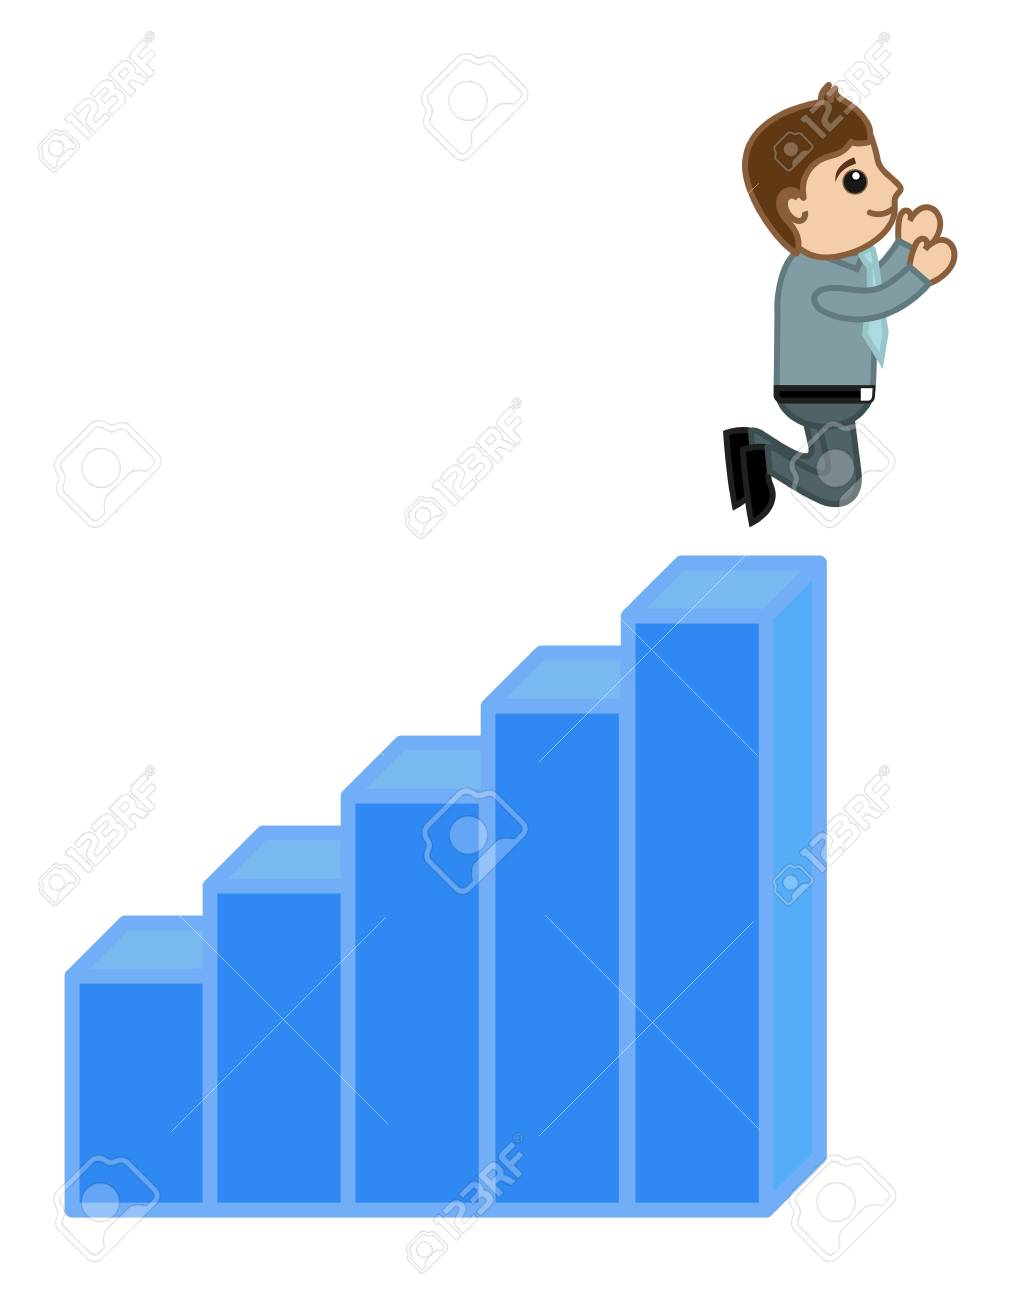 Man Jumped Over the Stats Bar - Profit and Success Concept Vector Stock Vector - 21983762